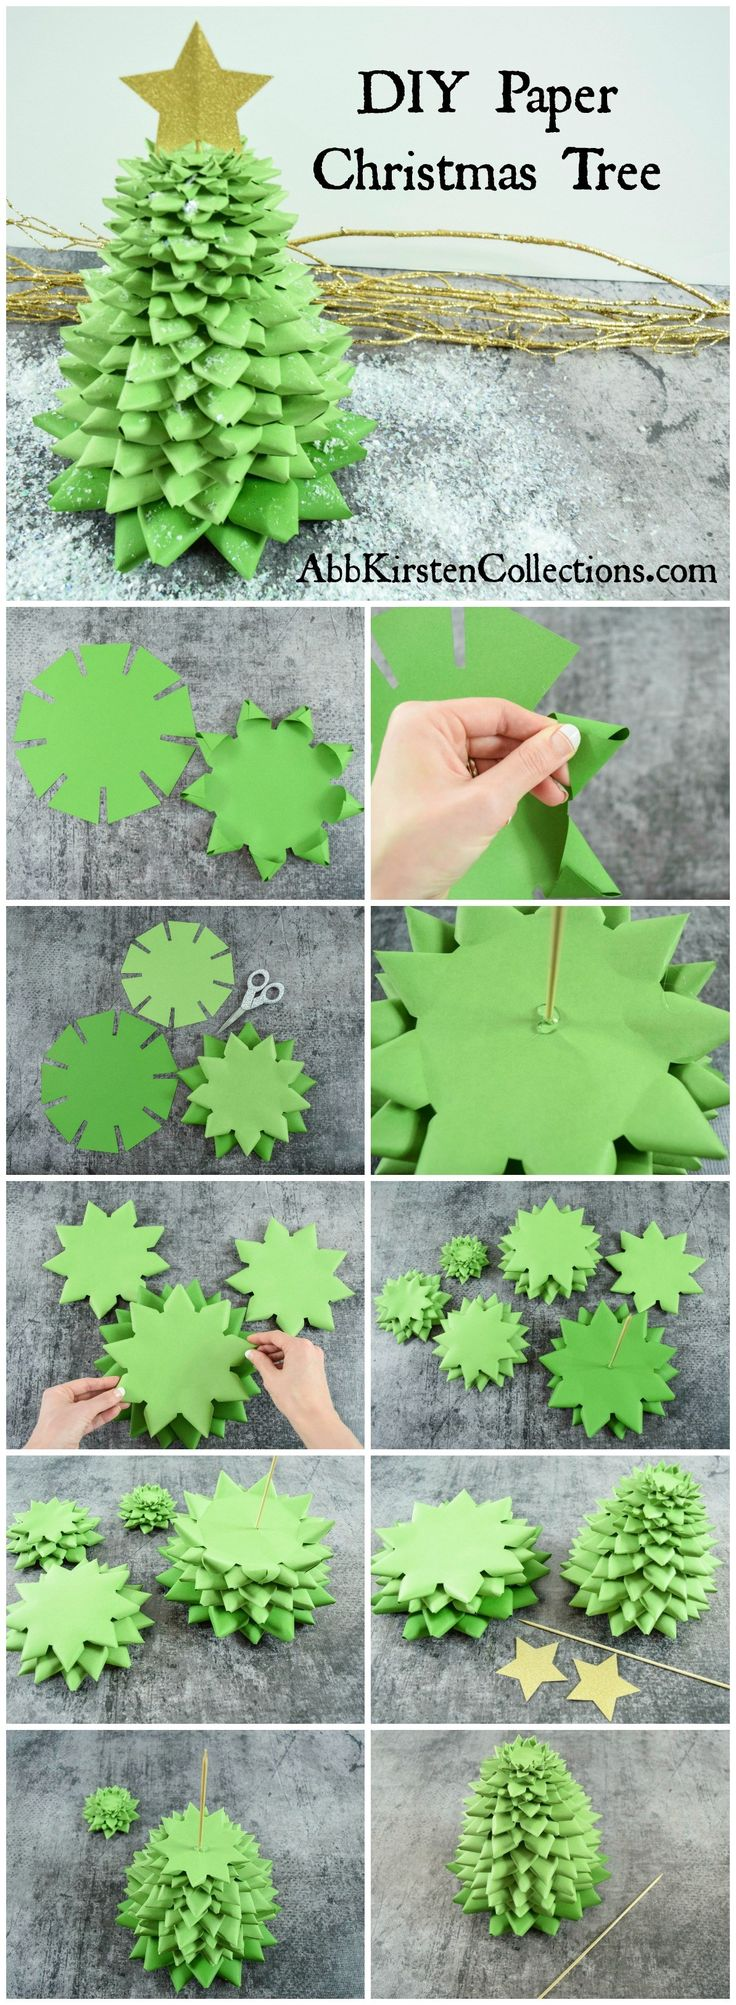 DIY Step by Step Paper Christmas Tree Holiday Craft